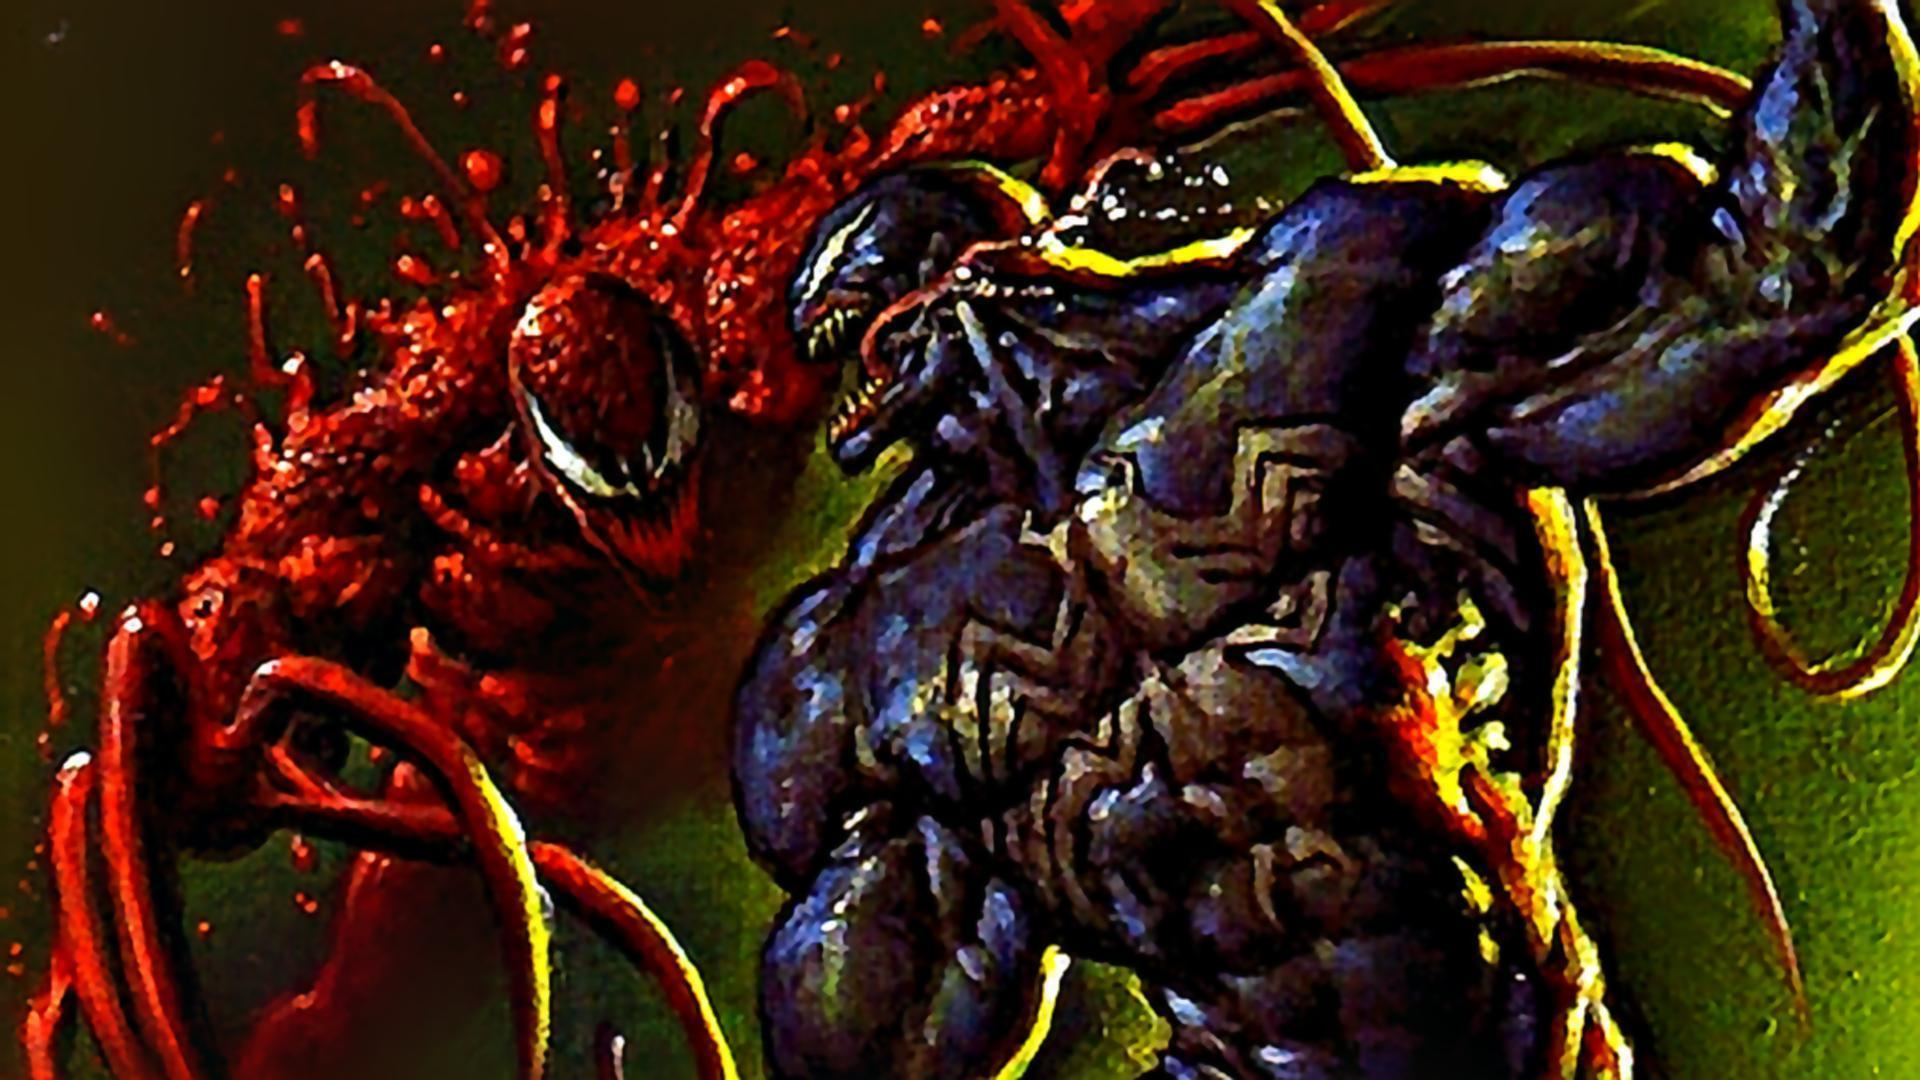 Marvel Comics Carnage Spiderman Wallpapers 1920x1080 taken from